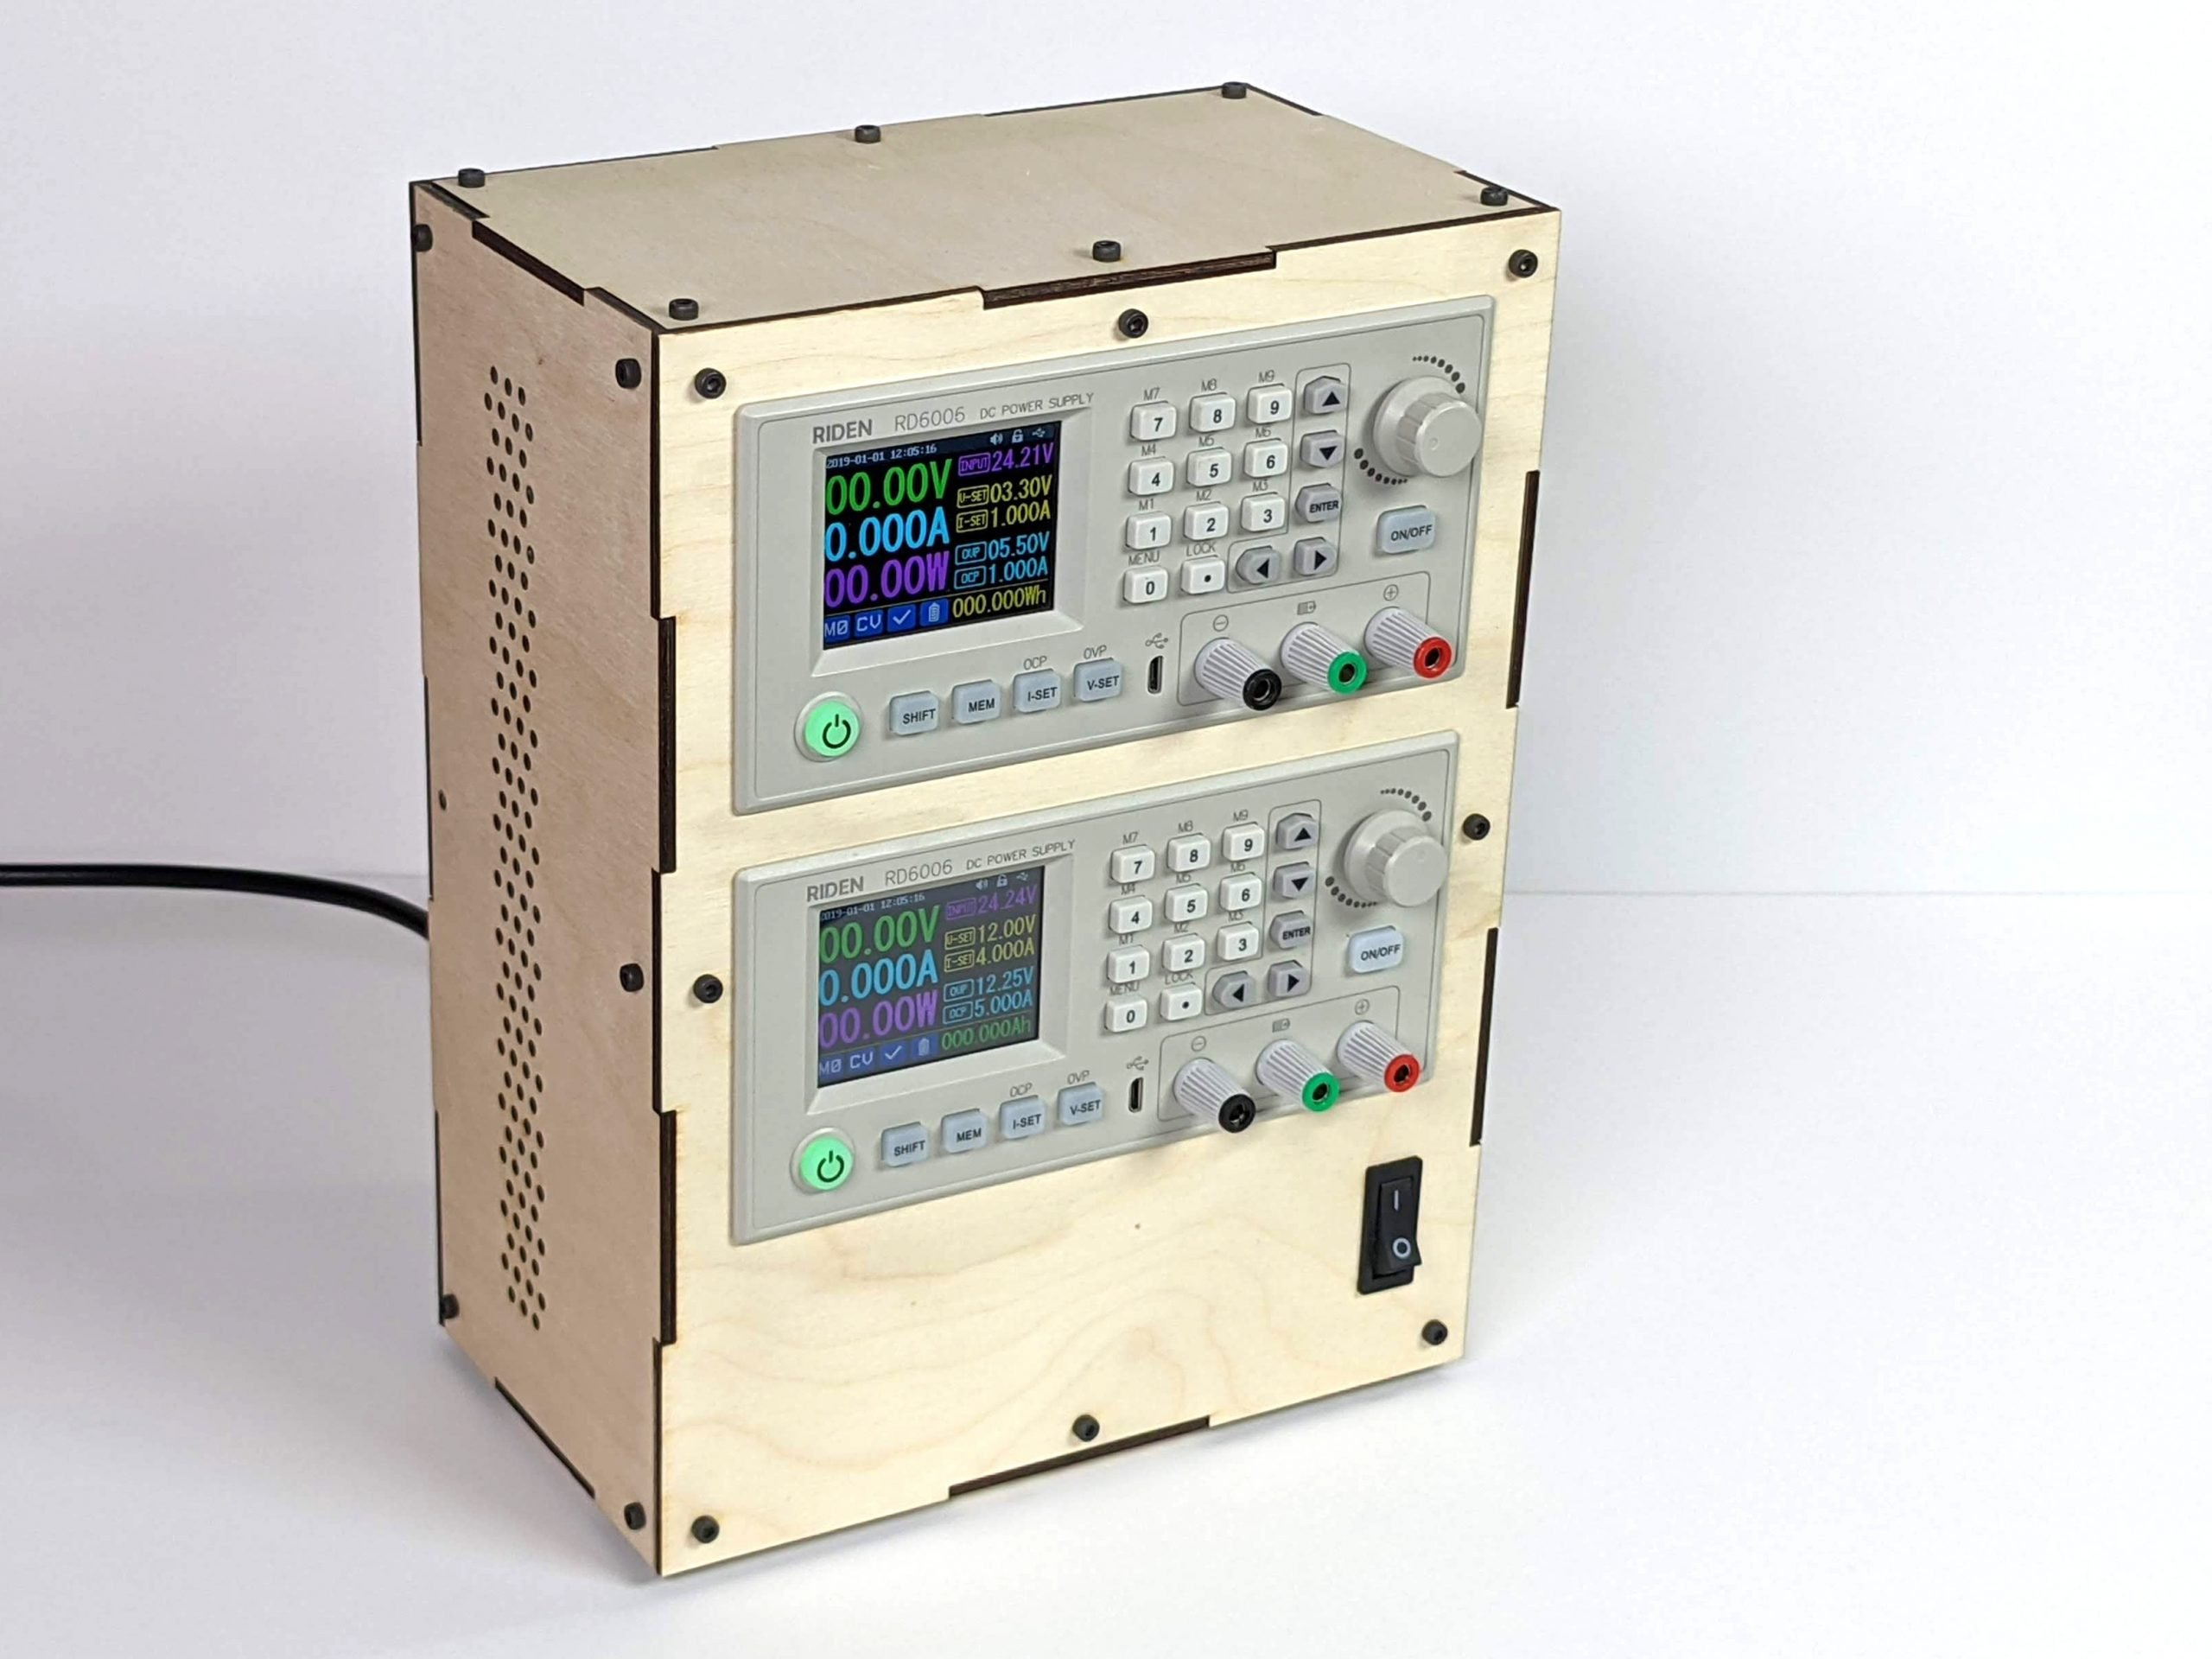 dual riden rd6006 power supply front scaled